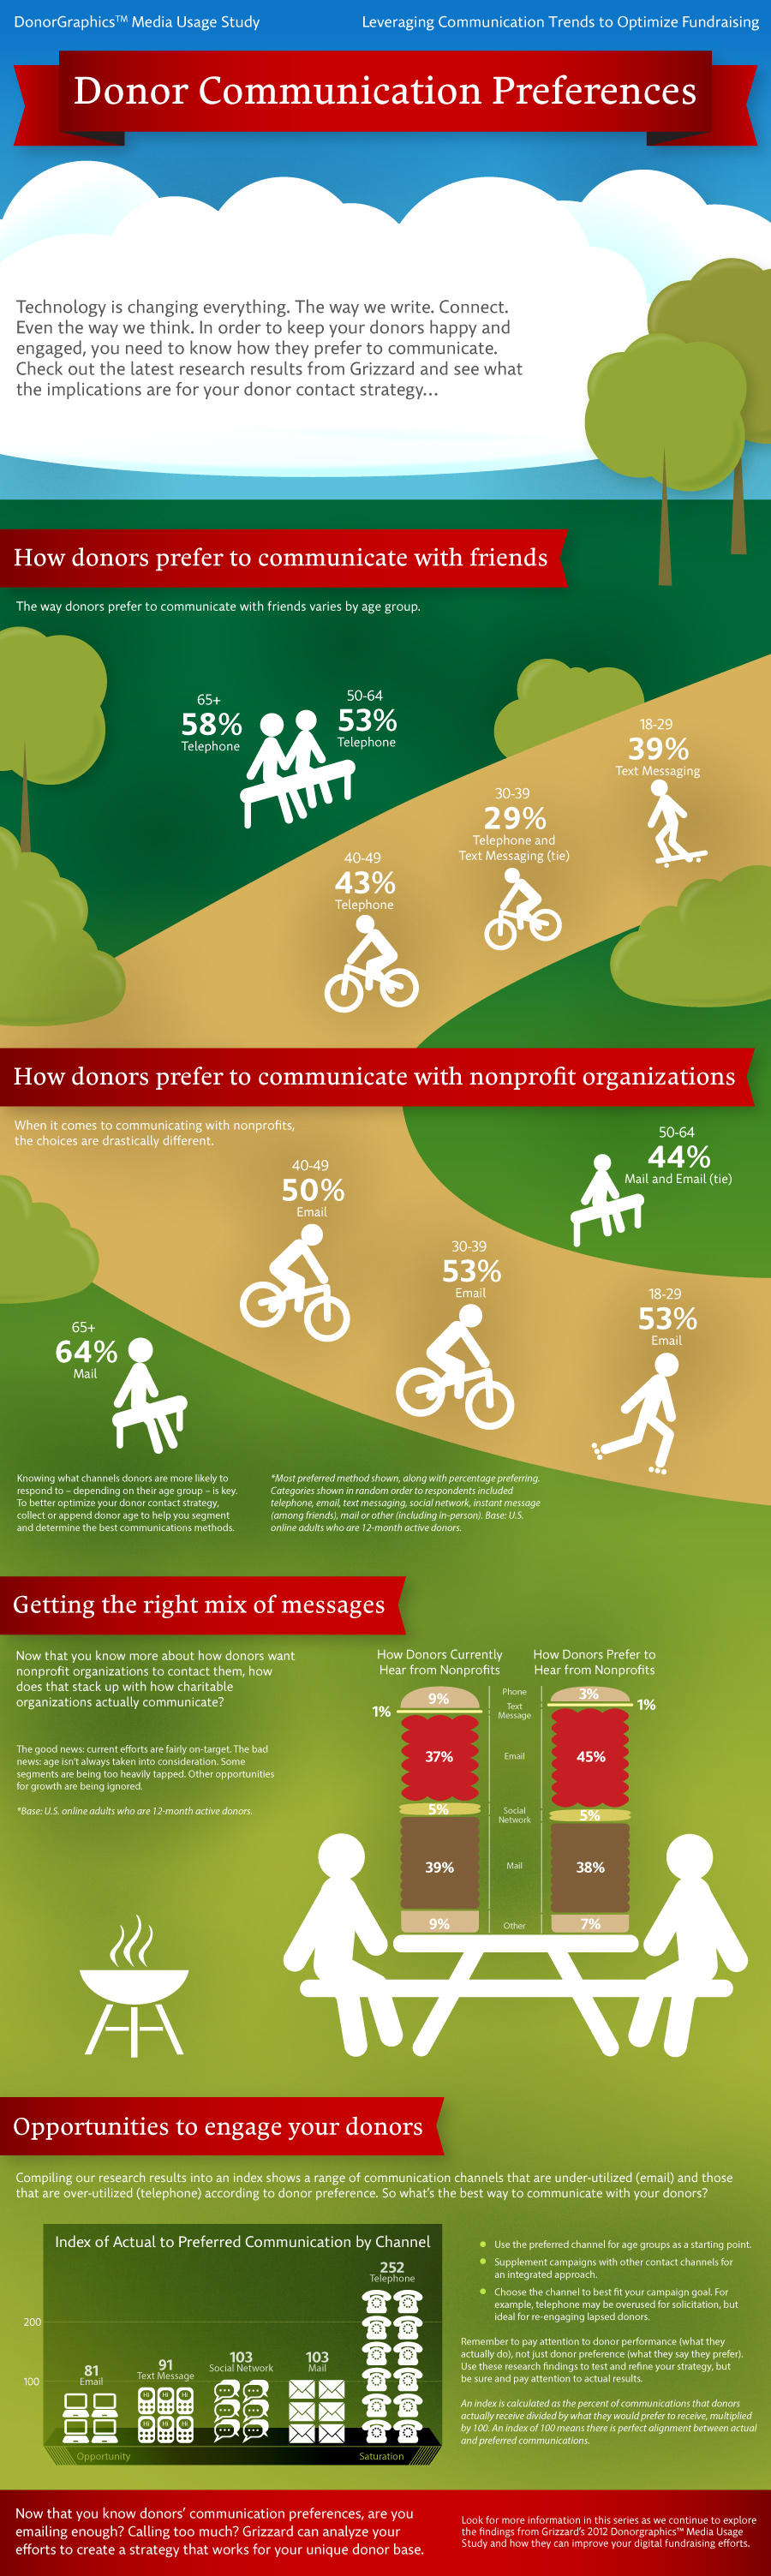 Donor Communication Preferences Infographic